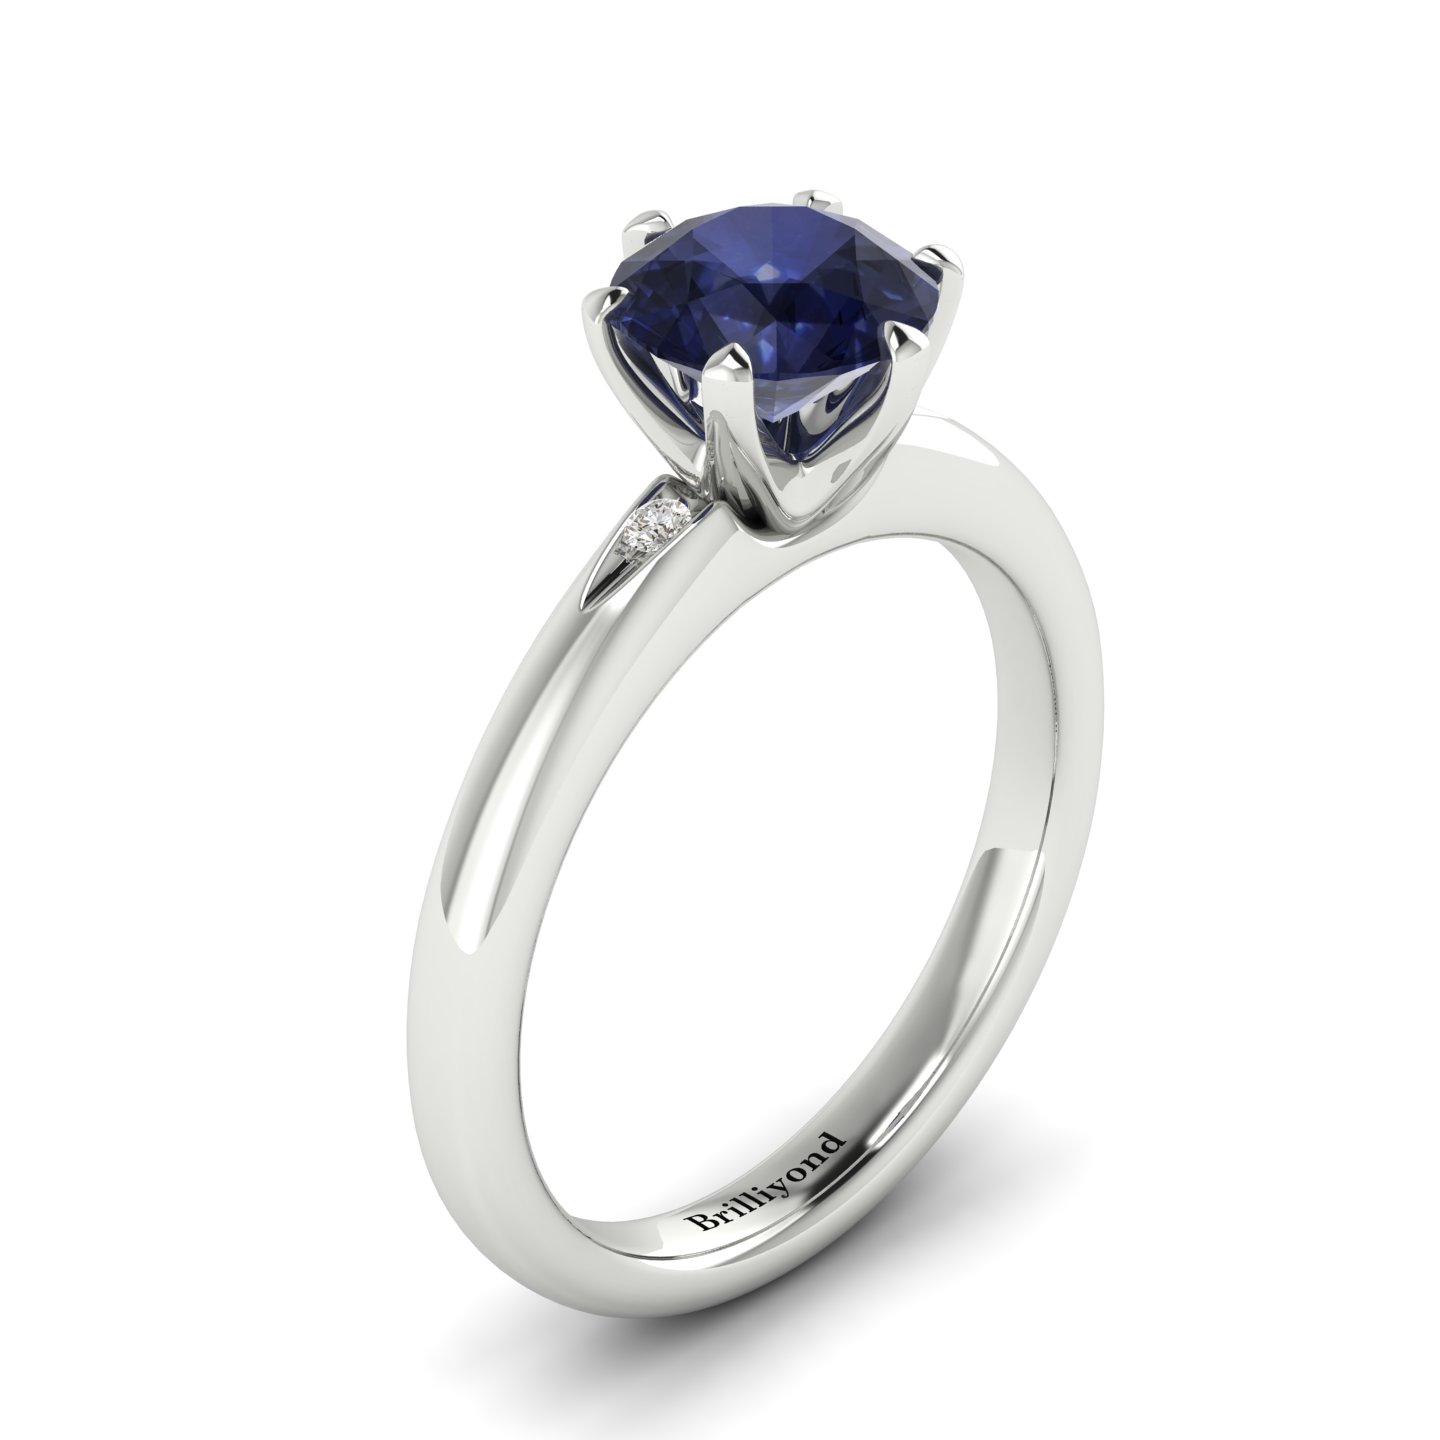 Iolite White Gold Solitaire Engagement Ring Byond_image1